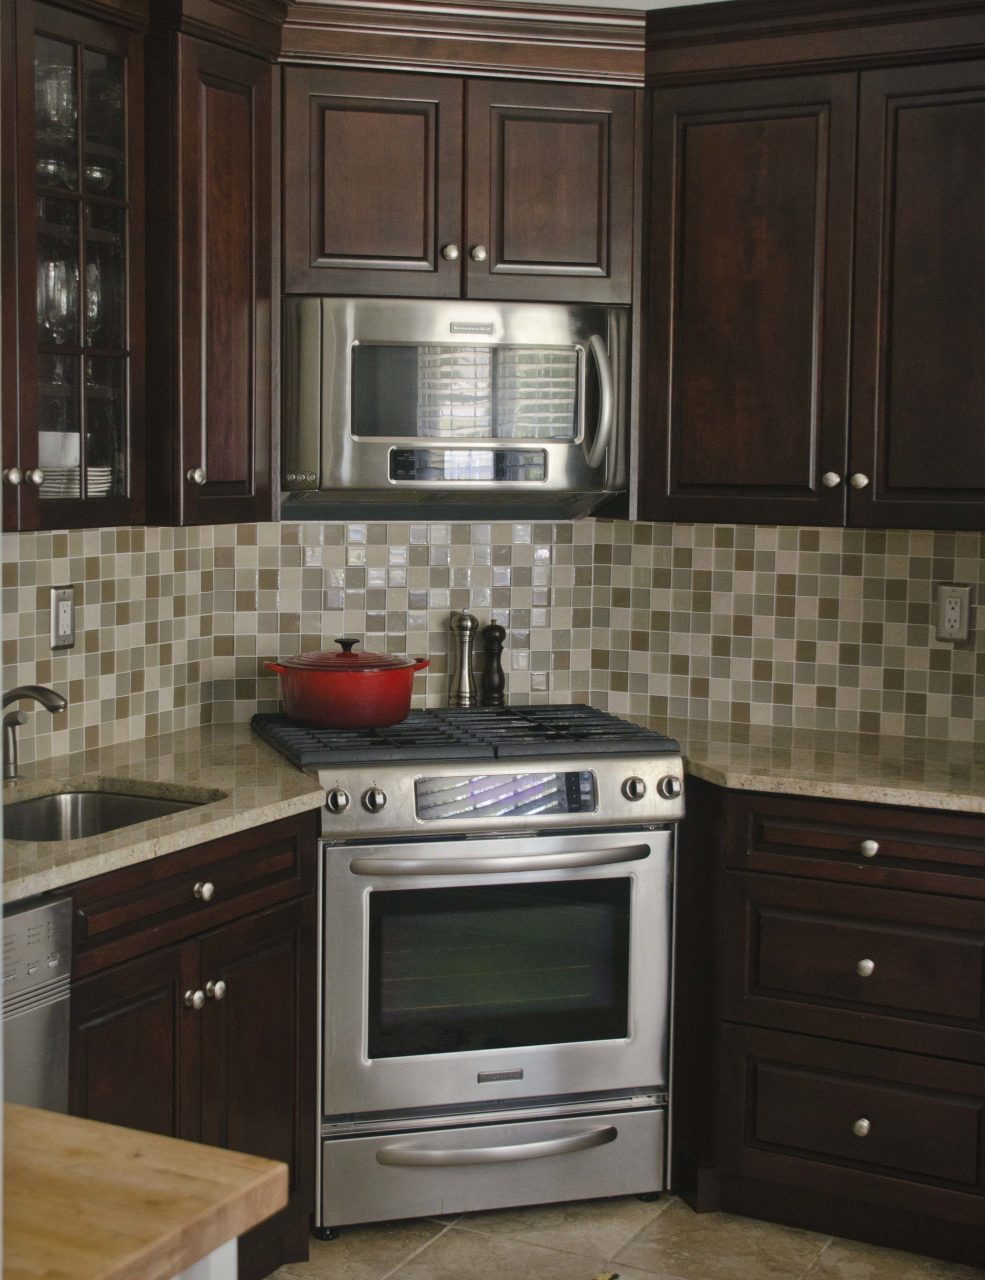 Nj kitchen remodeling corner stove trade mark design for Small kitchen designs pictures and samples